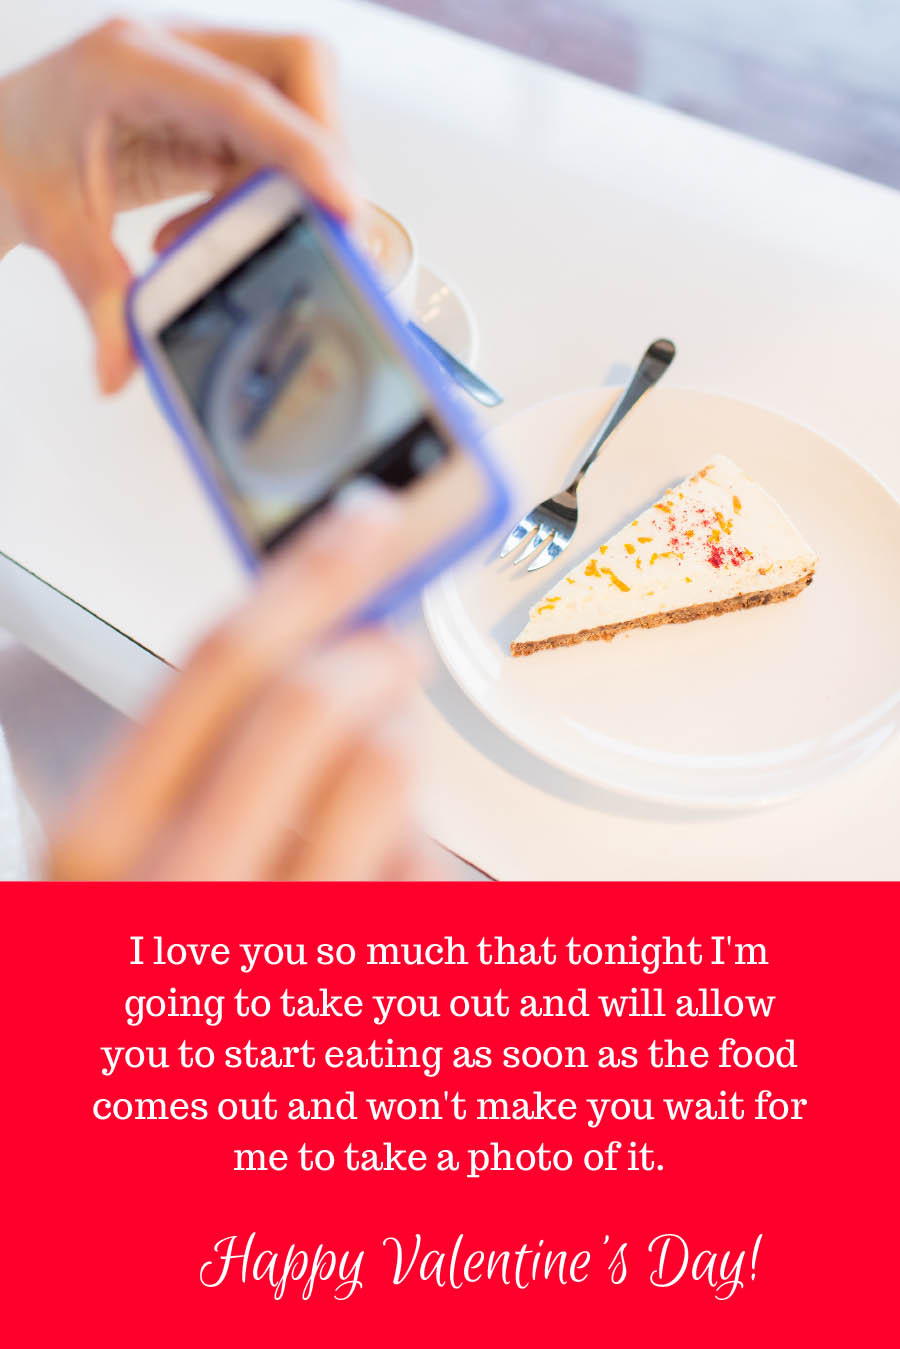 I love you so much that tonight I'm going to take you out and will allow you to start eating as soon as the food comes out and won't make you wait for me to take a photo of it. Happy Valentine's Day! | Valentines for Travel Bloggers